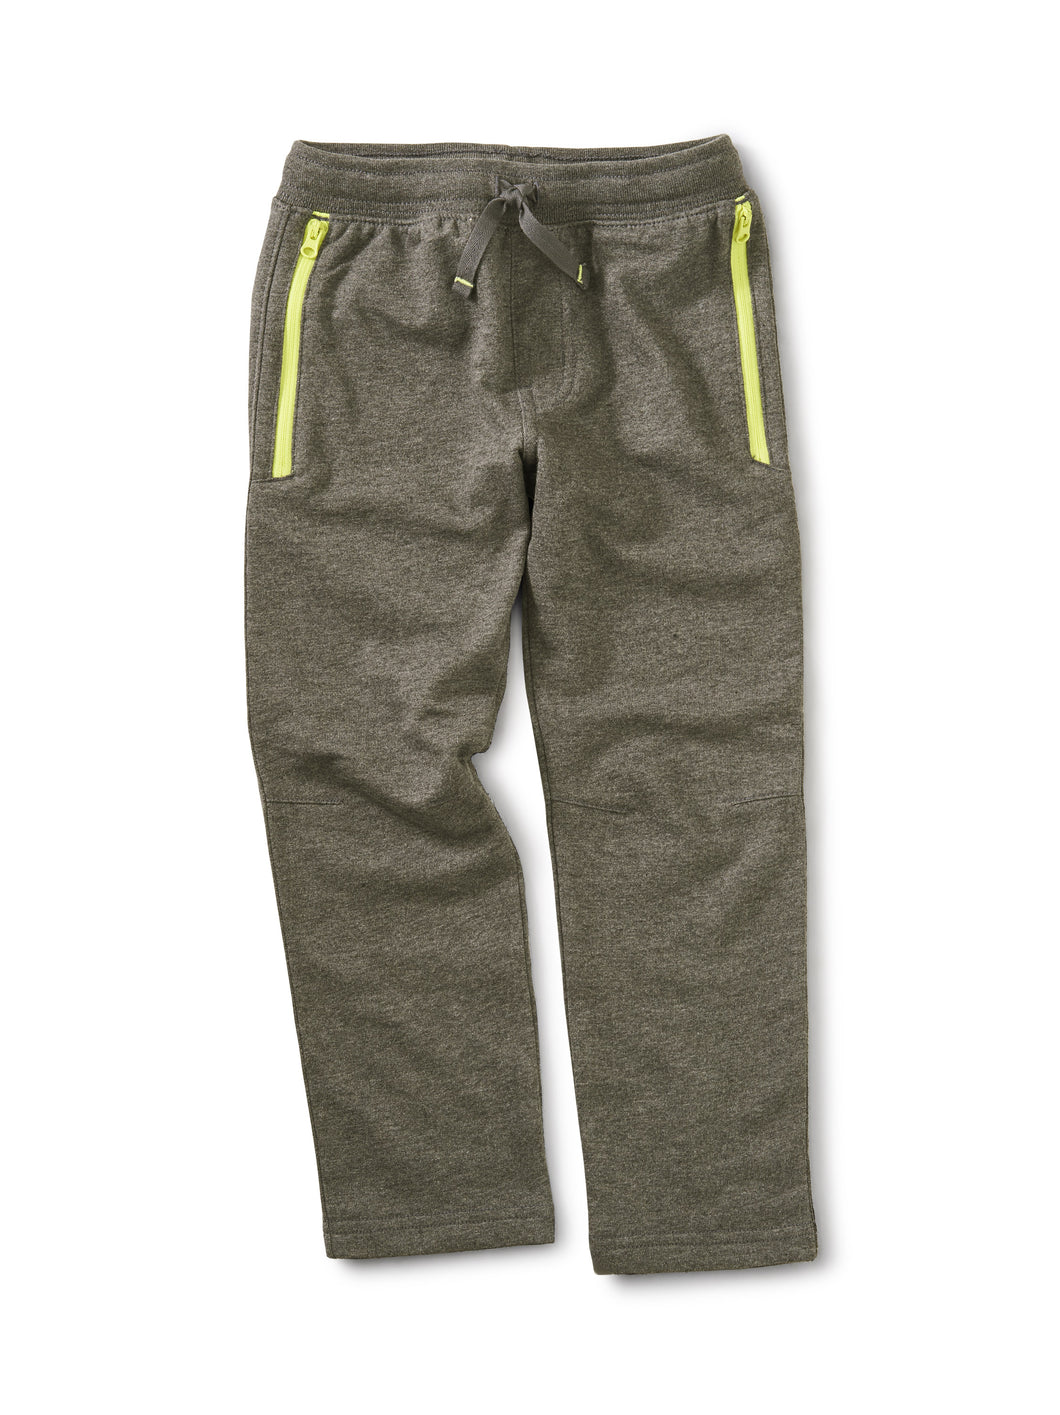 Tea Collection Zip Pocket Joggers - Charcoal Grey Heather